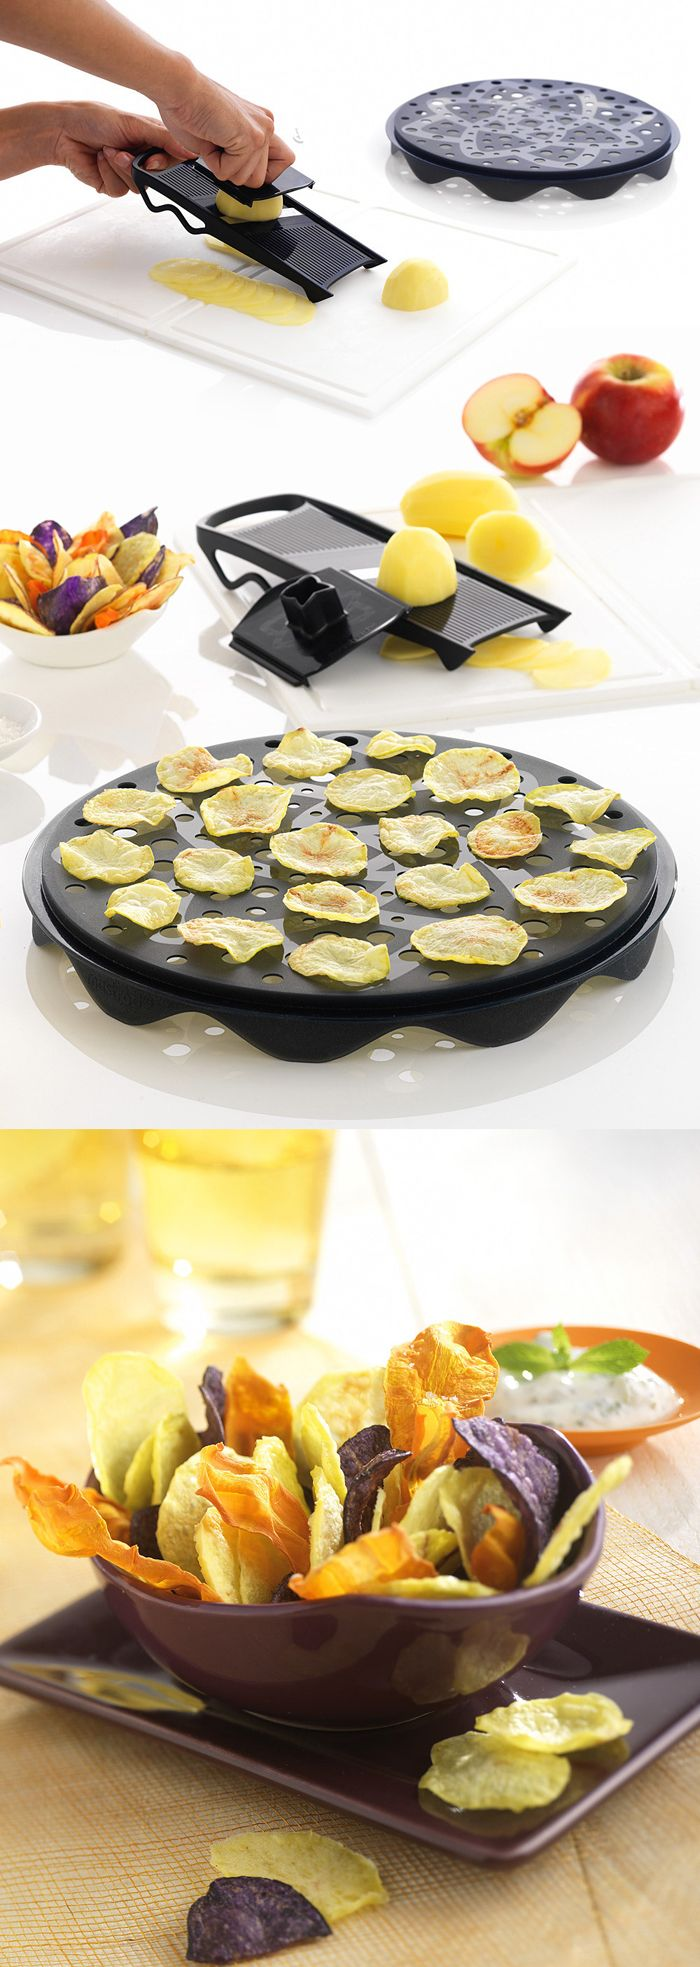 Make crunchy, fat-free chips fast! Slice vegetables and fruits thinly and quickly with the mandoline, then place them on the tray and in the microwave for a healthy, tasty snack in minutes. #product_design